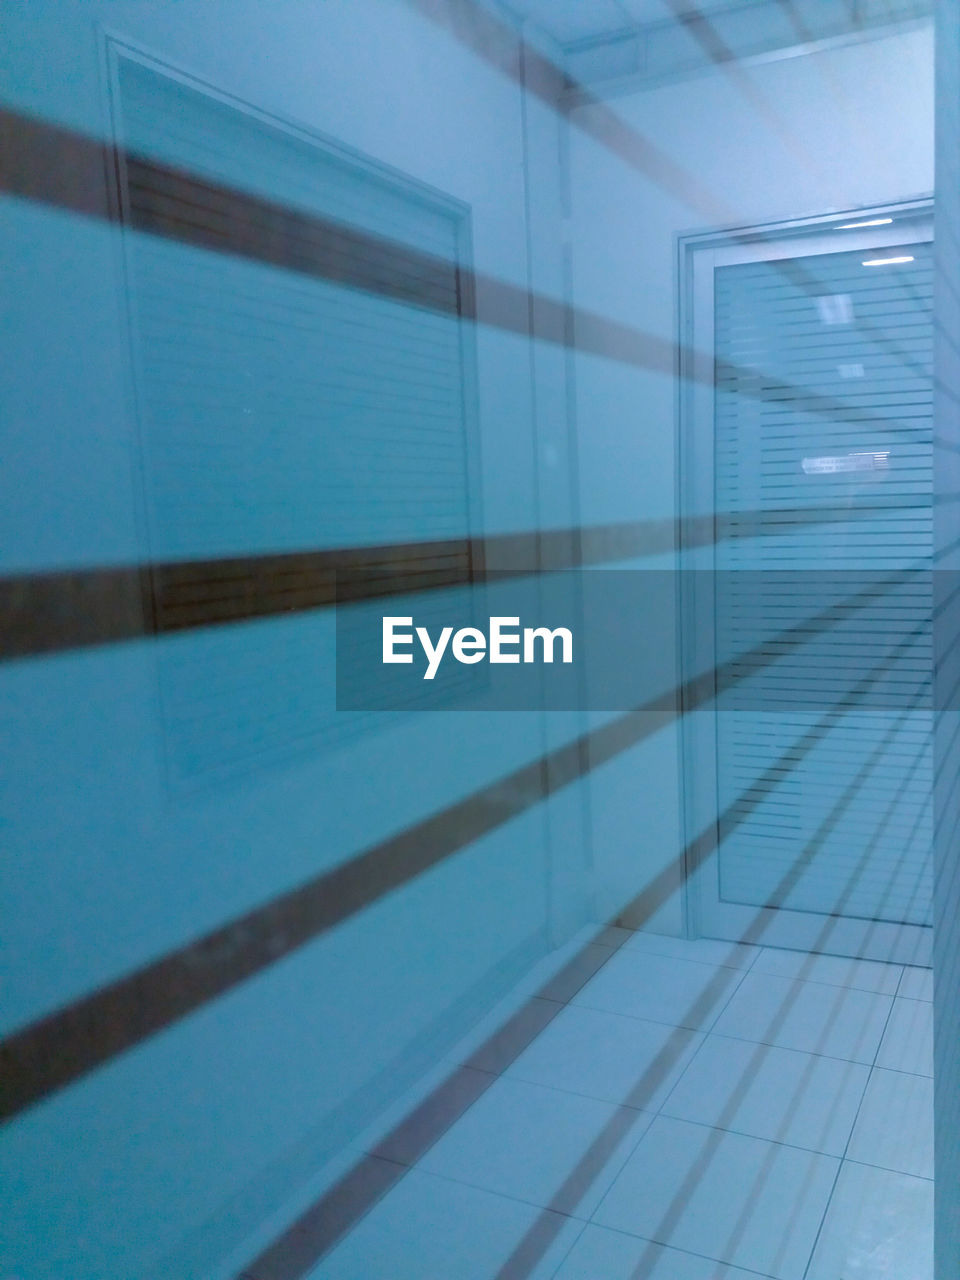 architecture, flooring, tile, no people, built structure, indoors, wall - building feature, blue, swimming pool, reflection, pool, day, pattern, glass - material, building, full frame, window, tiled floor, sunlight